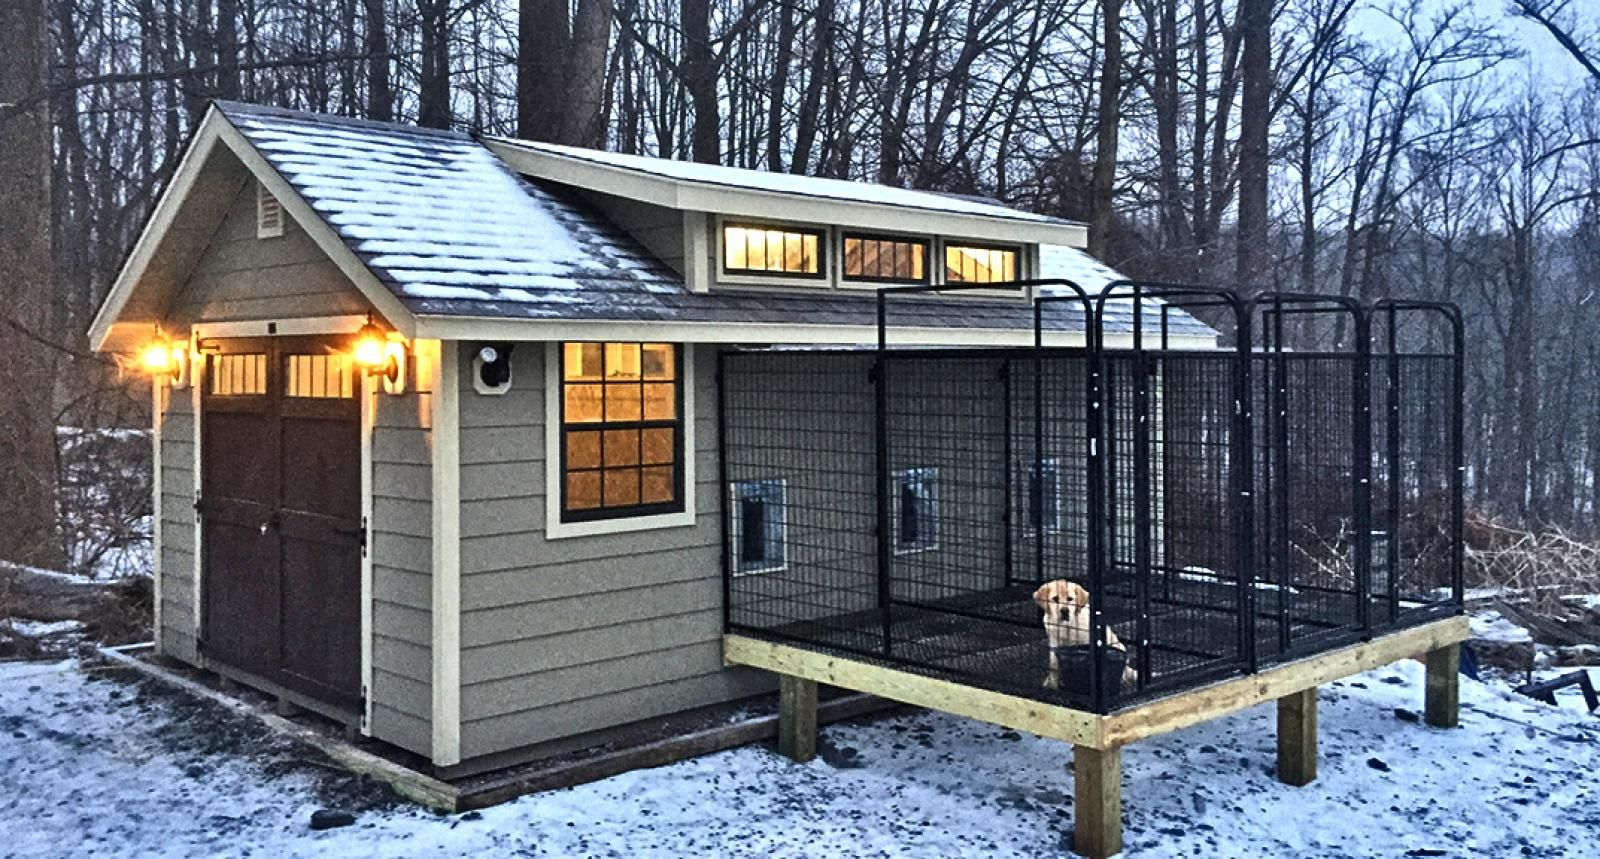 Custom dog kennel lighted a z o r e pinterest for for Building dog kennels for breeding